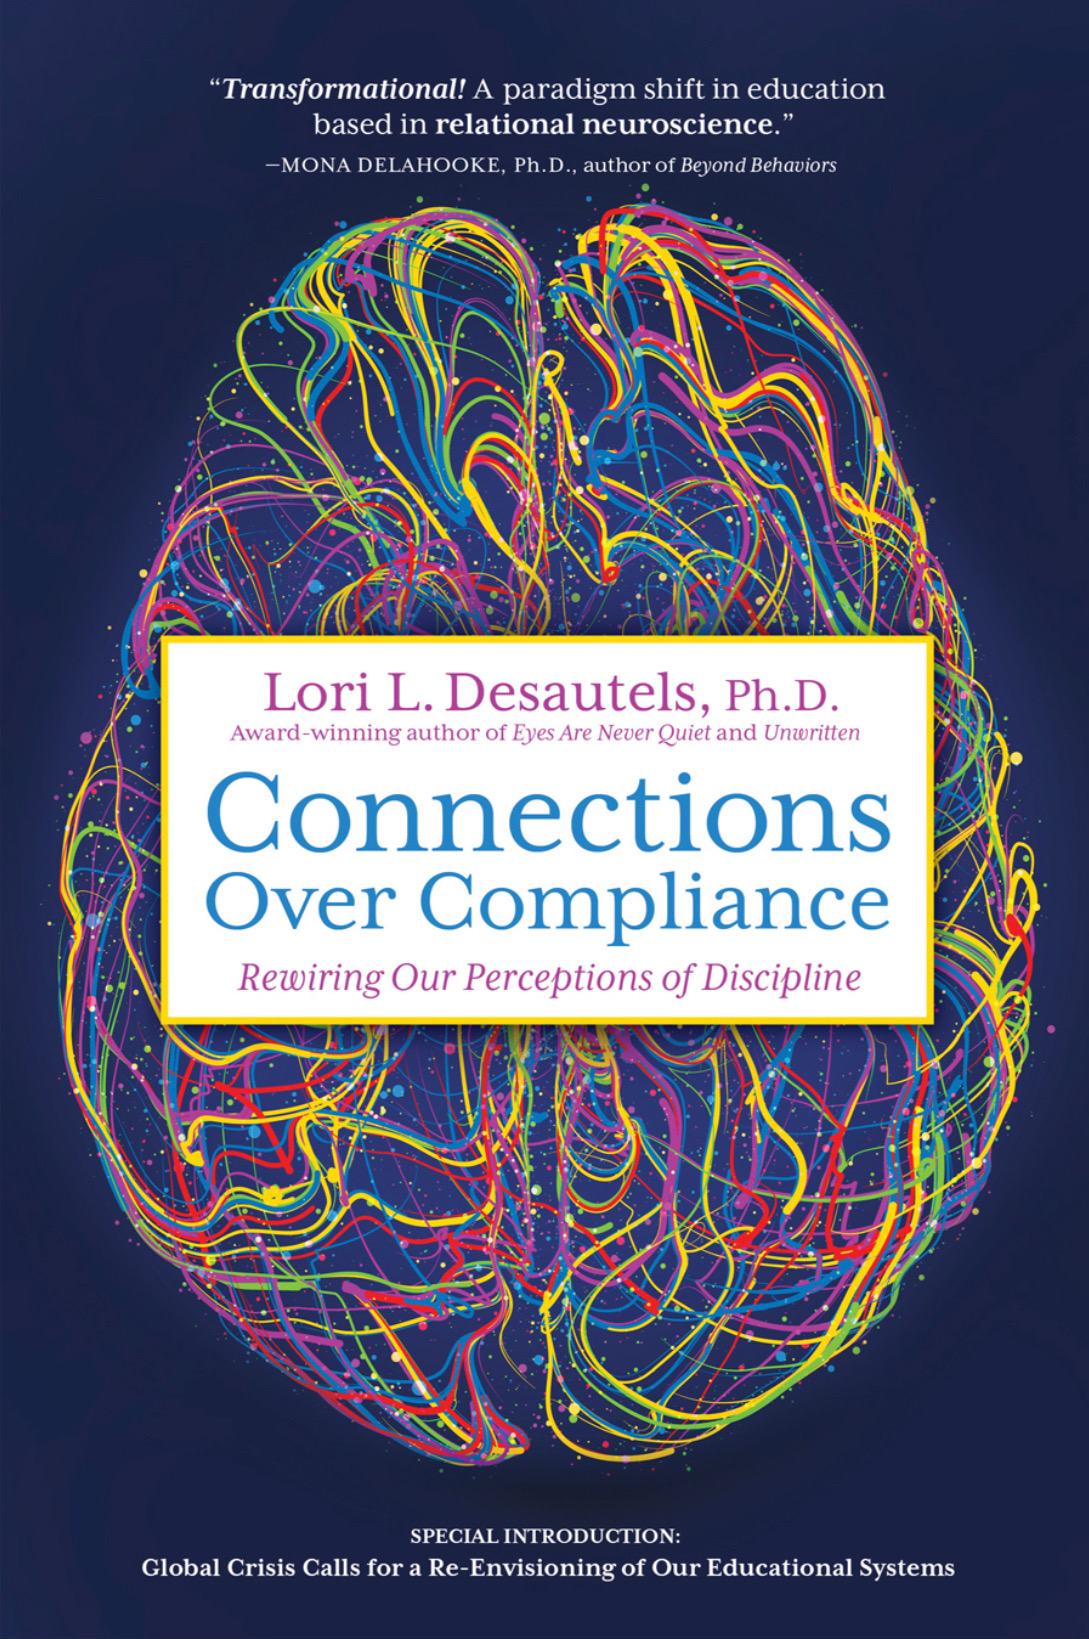 Connections Over Compliance: Rewiring Our Perceptions of Discipline by Lori L Desautels